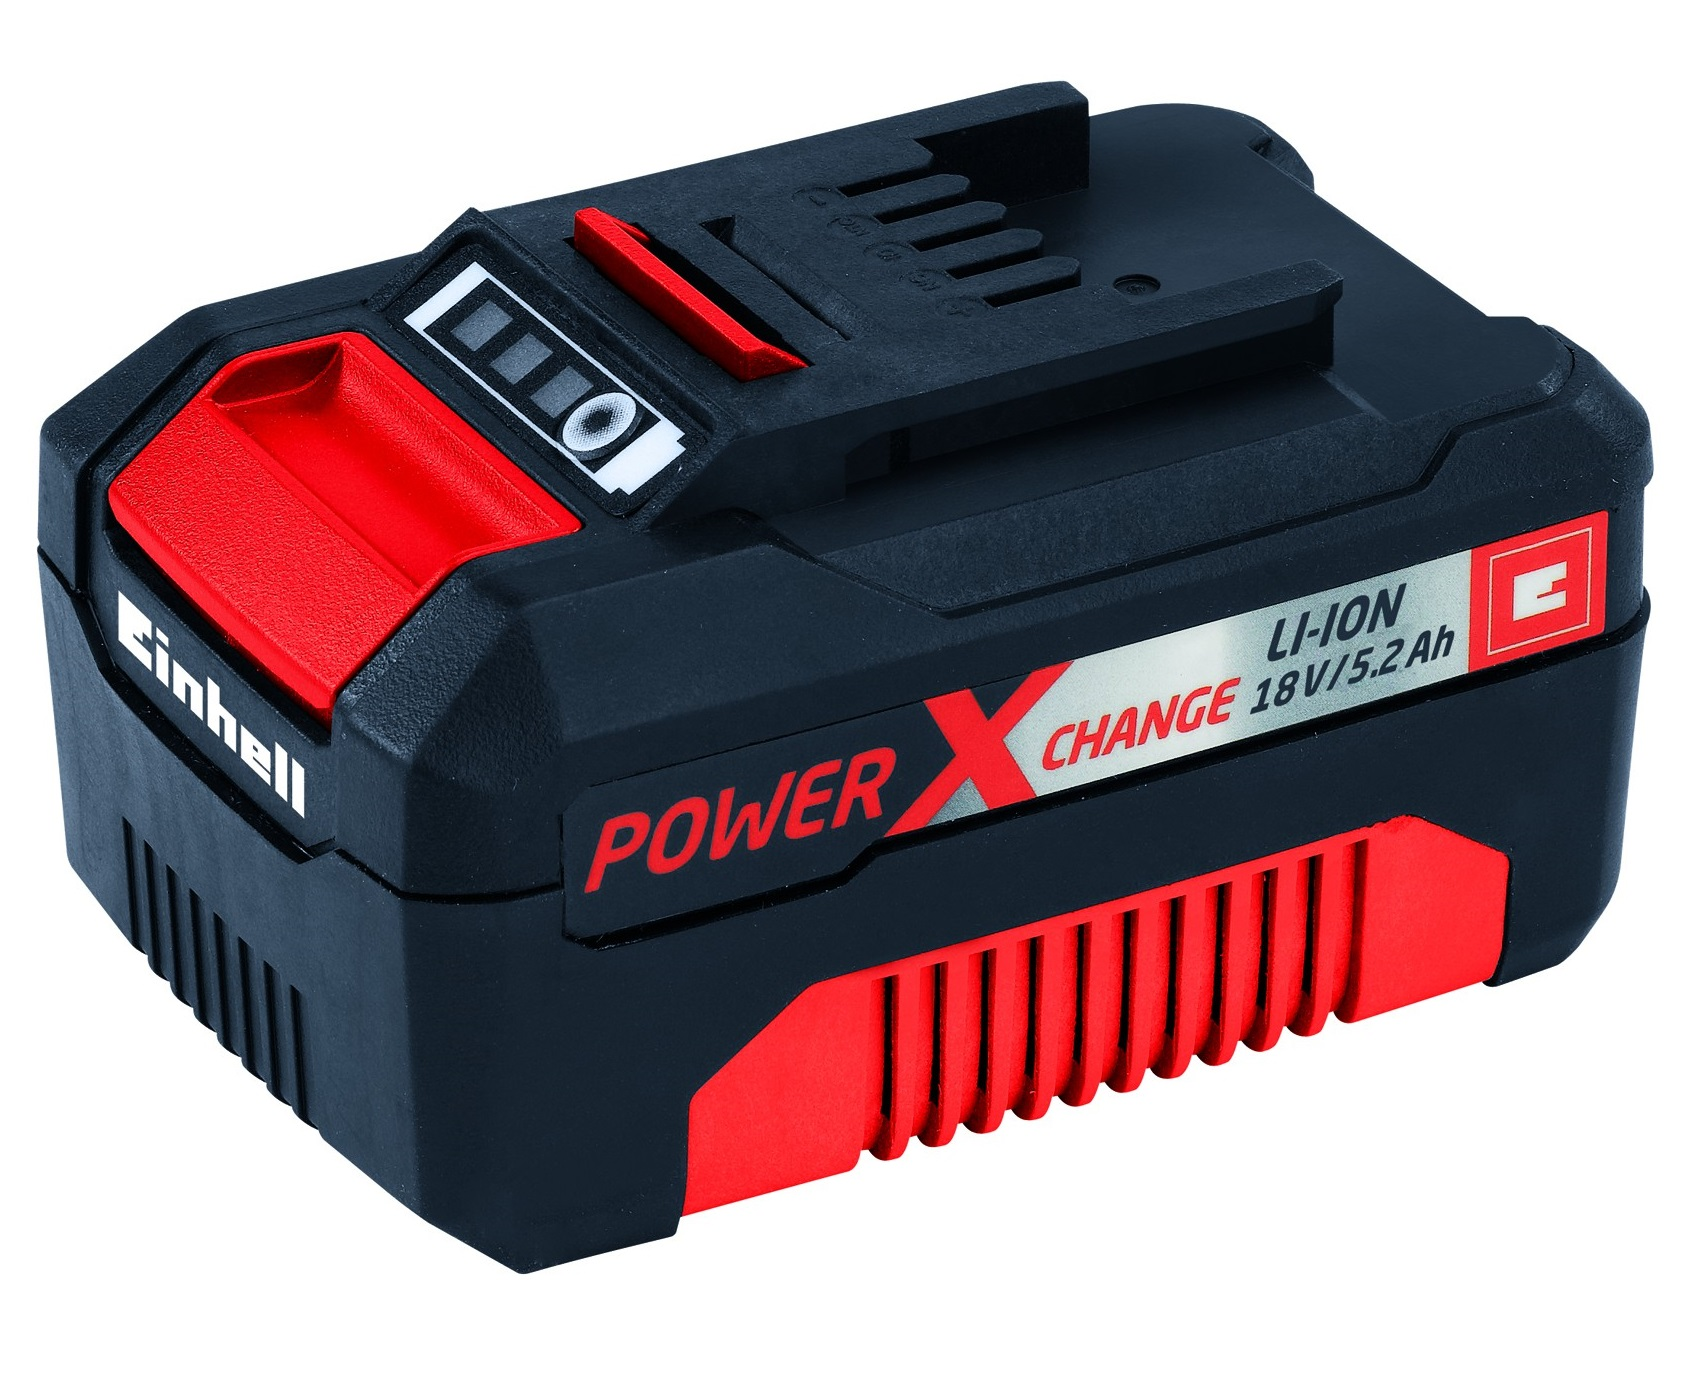 Einhell accu Power X Change 18 V - 5200 mAh